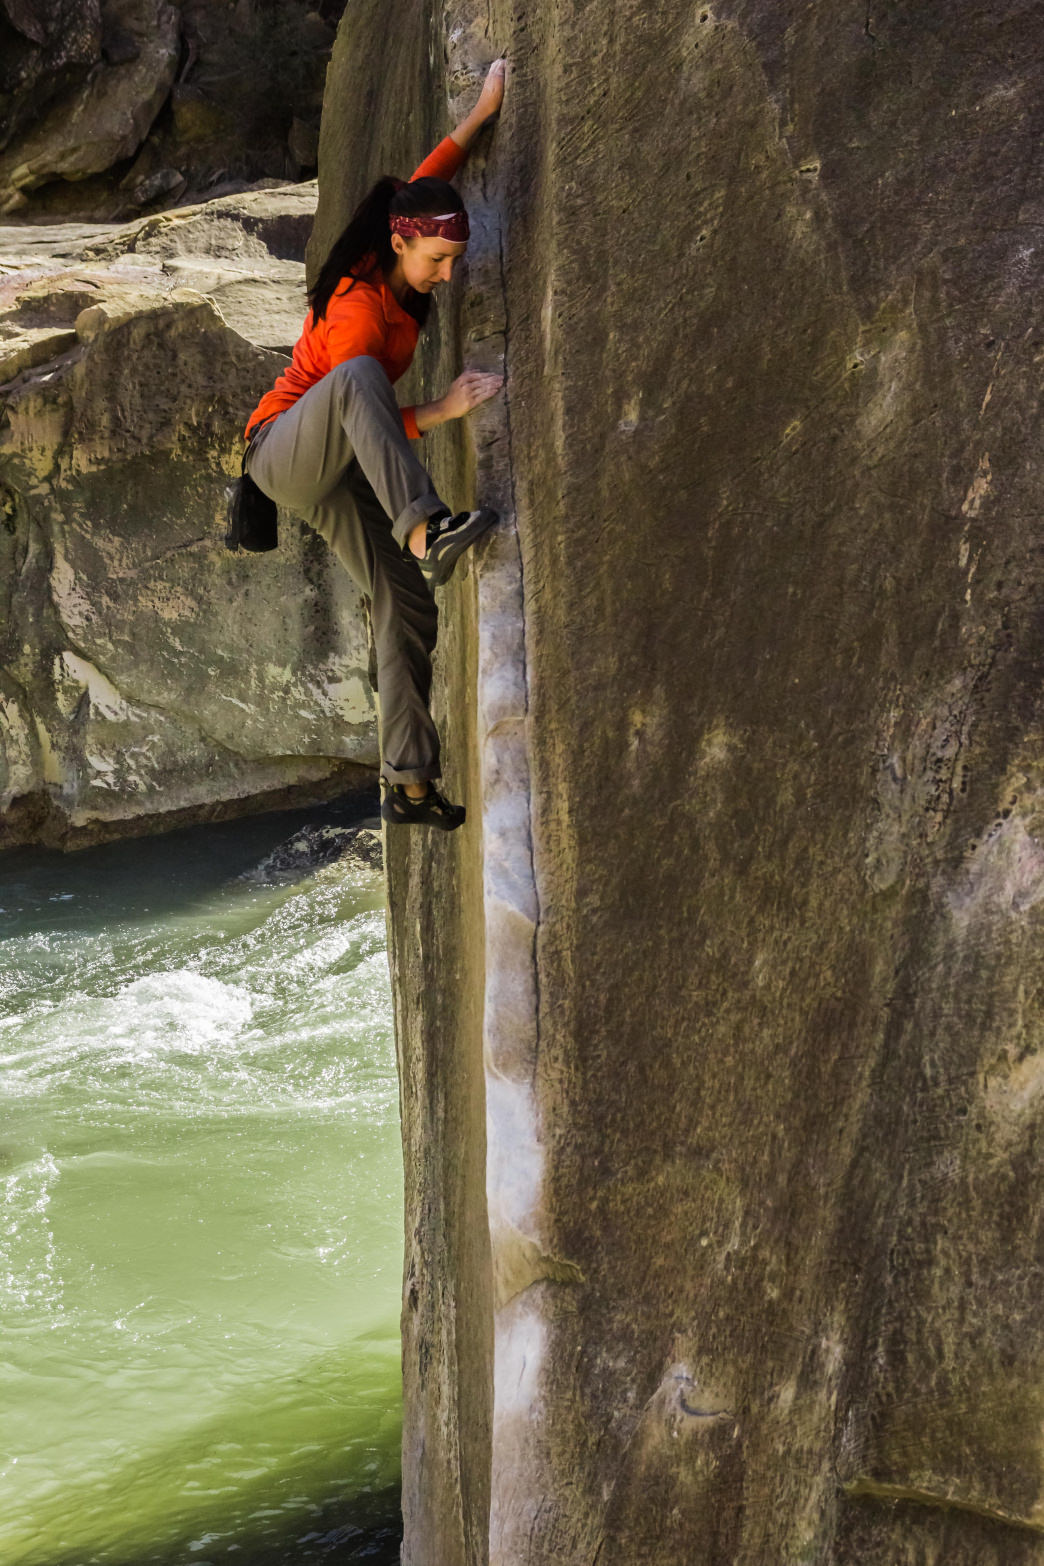 The Angler is only V2, but its height and the water below makes it a proud send for beginner-level climbers.